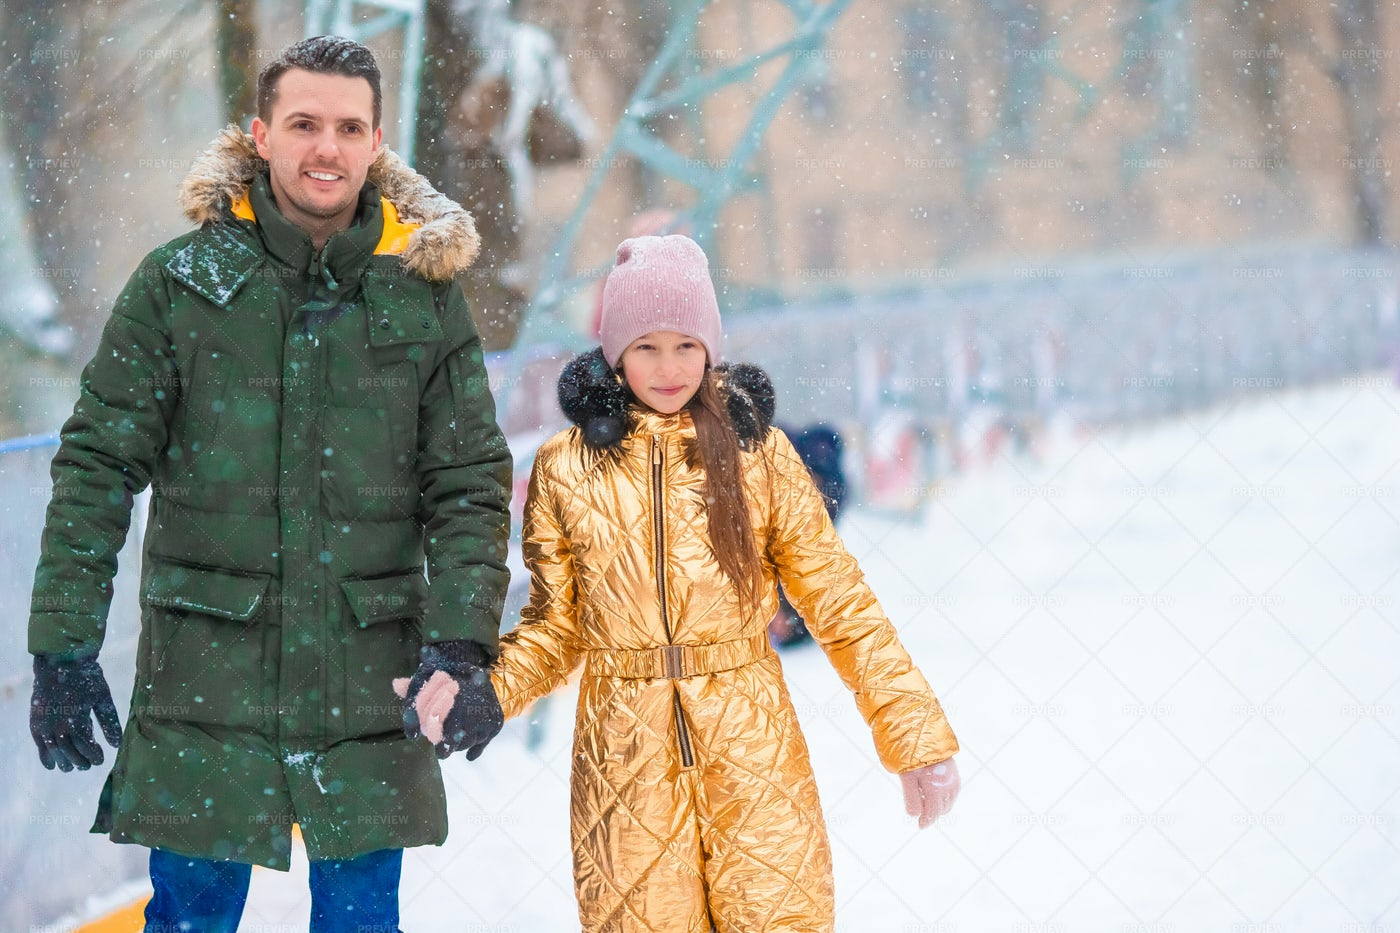 Dad And Daughter In Cold Winter: Stock Photos